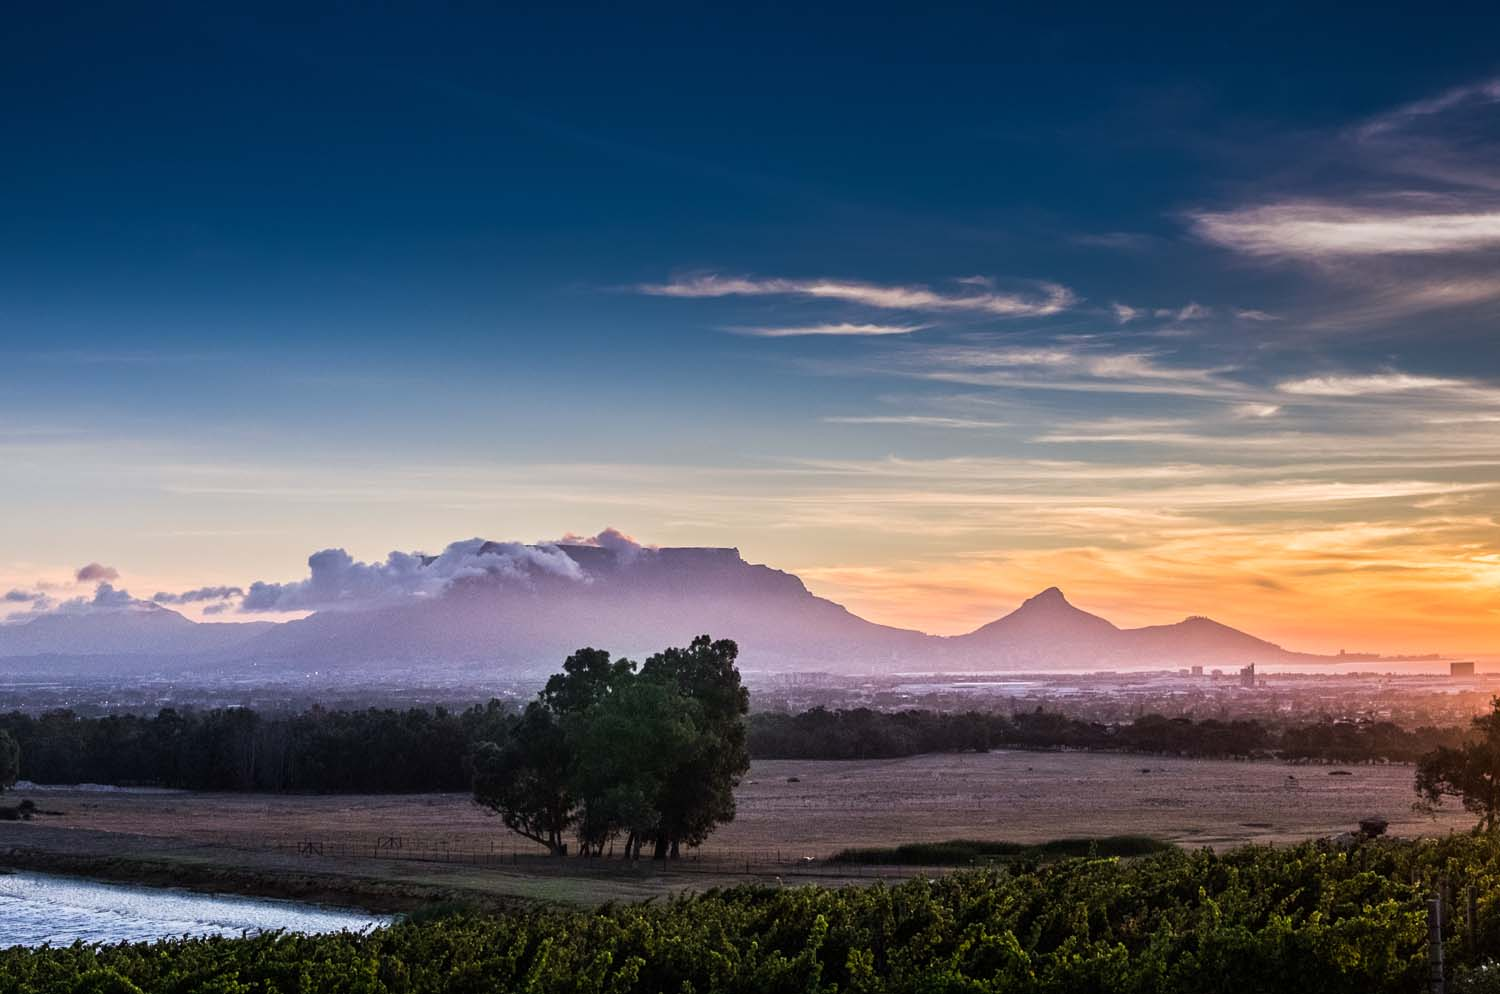 View of table mountain and lion's head during sunset